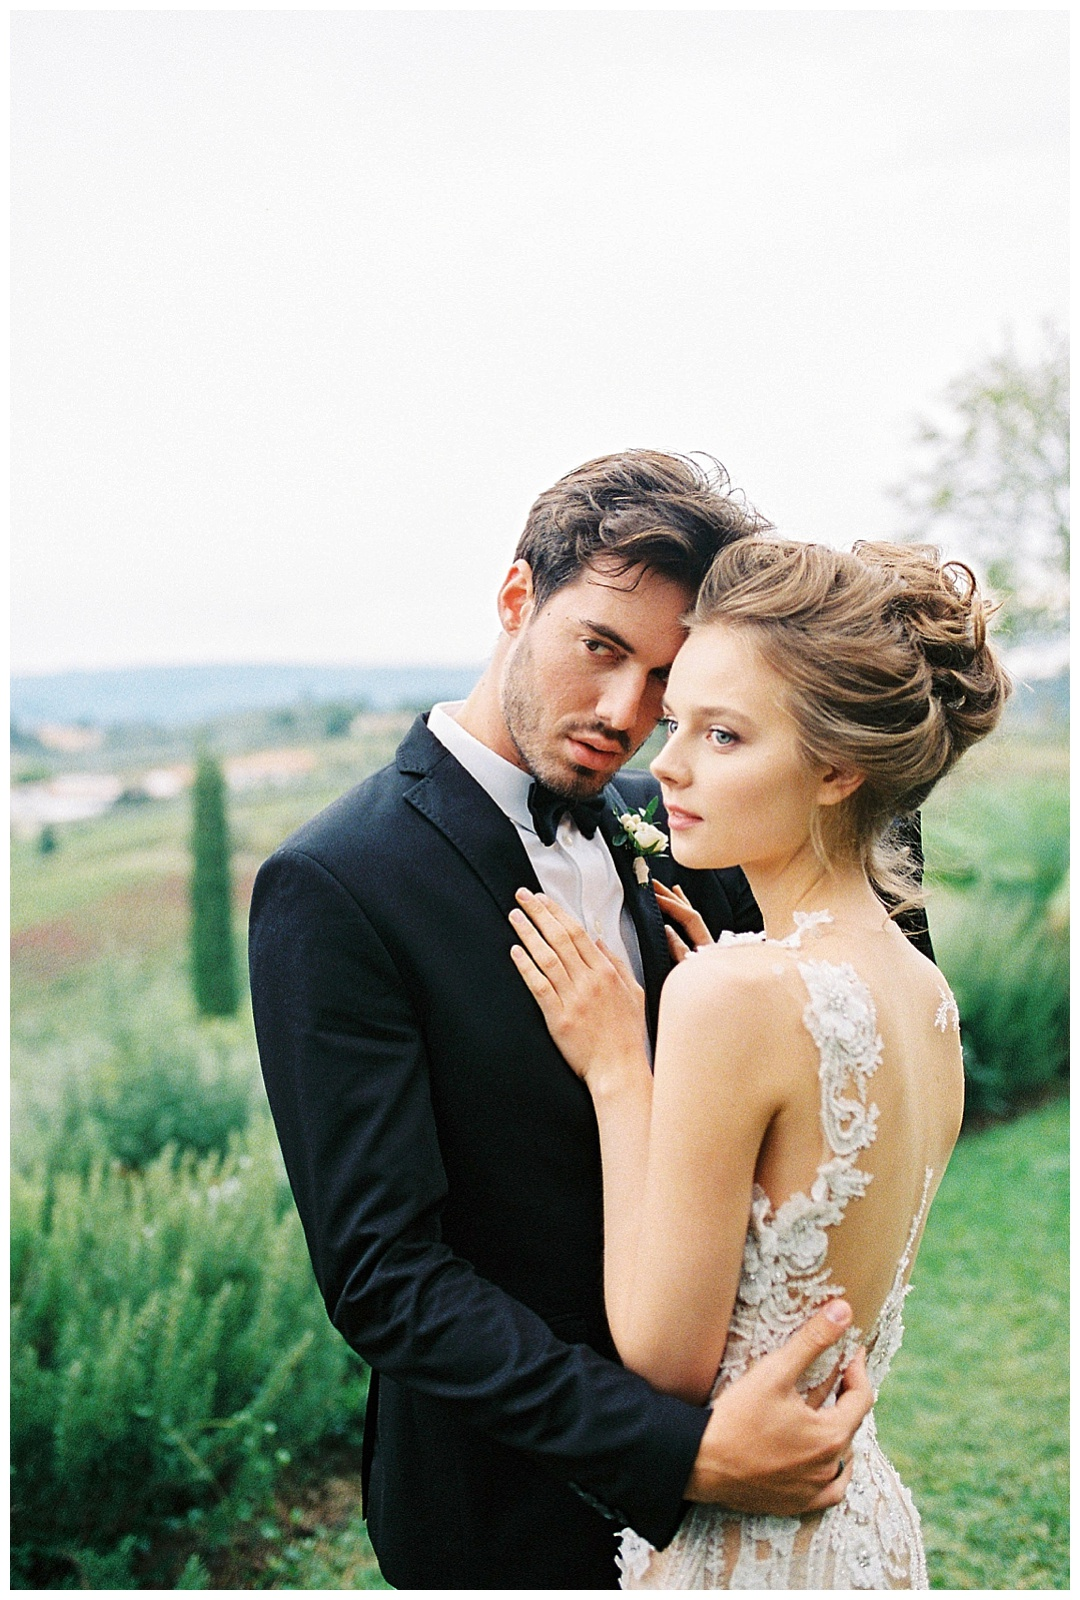 We_Can _Be_Heroes_alternative_wedding_photographer_Tuscany_wedding_film_0011